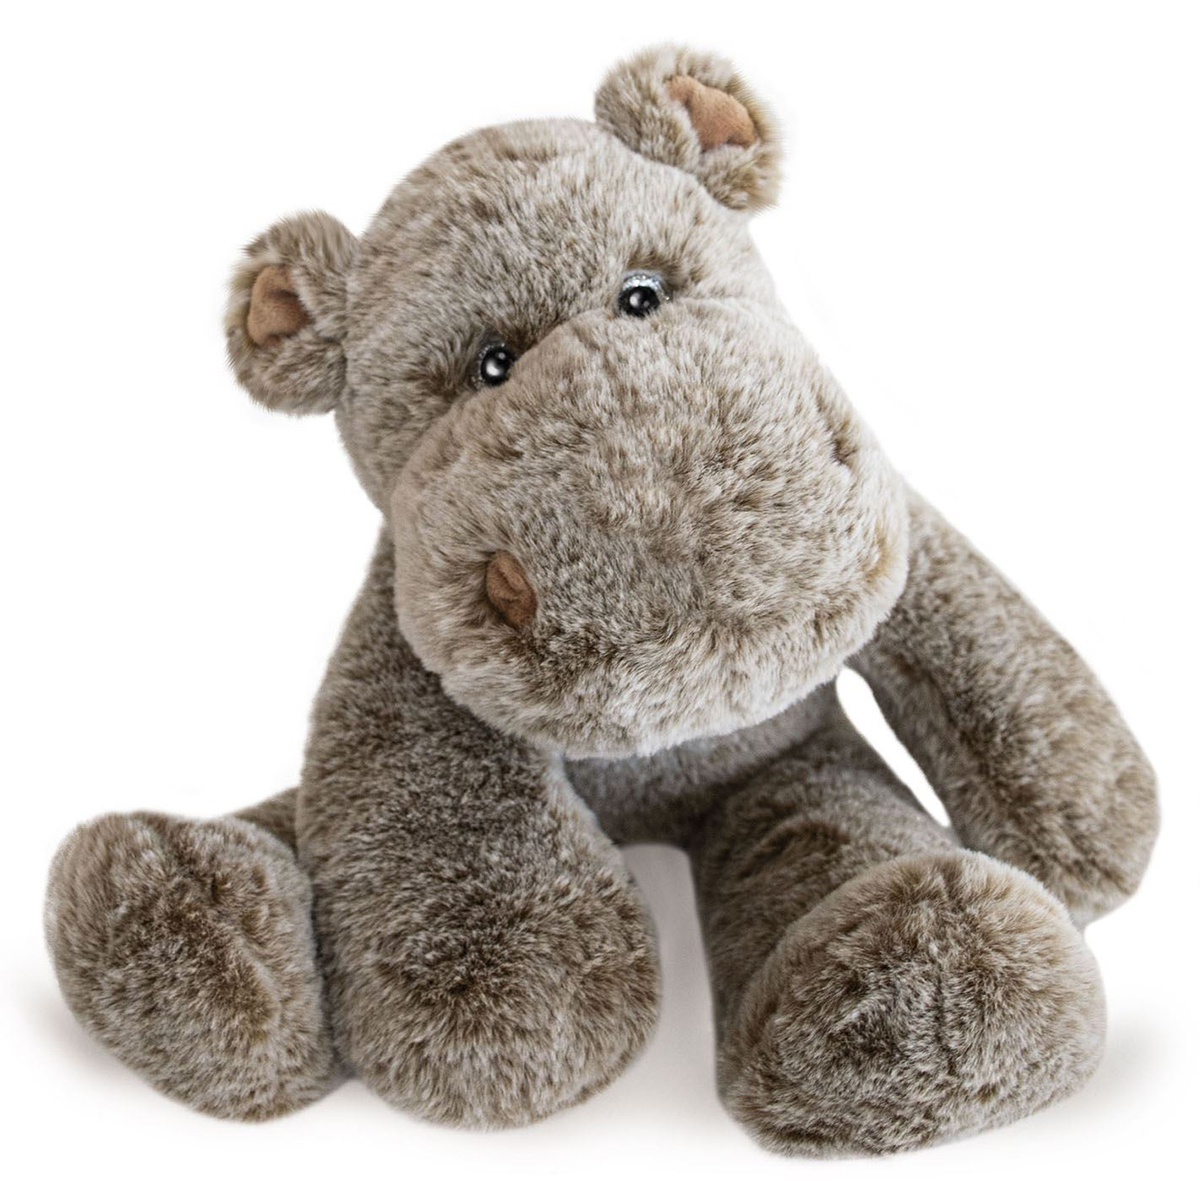 Peluche Peluche Sweety Mousse Hippo - Grand Peluche Sweety Mousse Hippo 40 cm